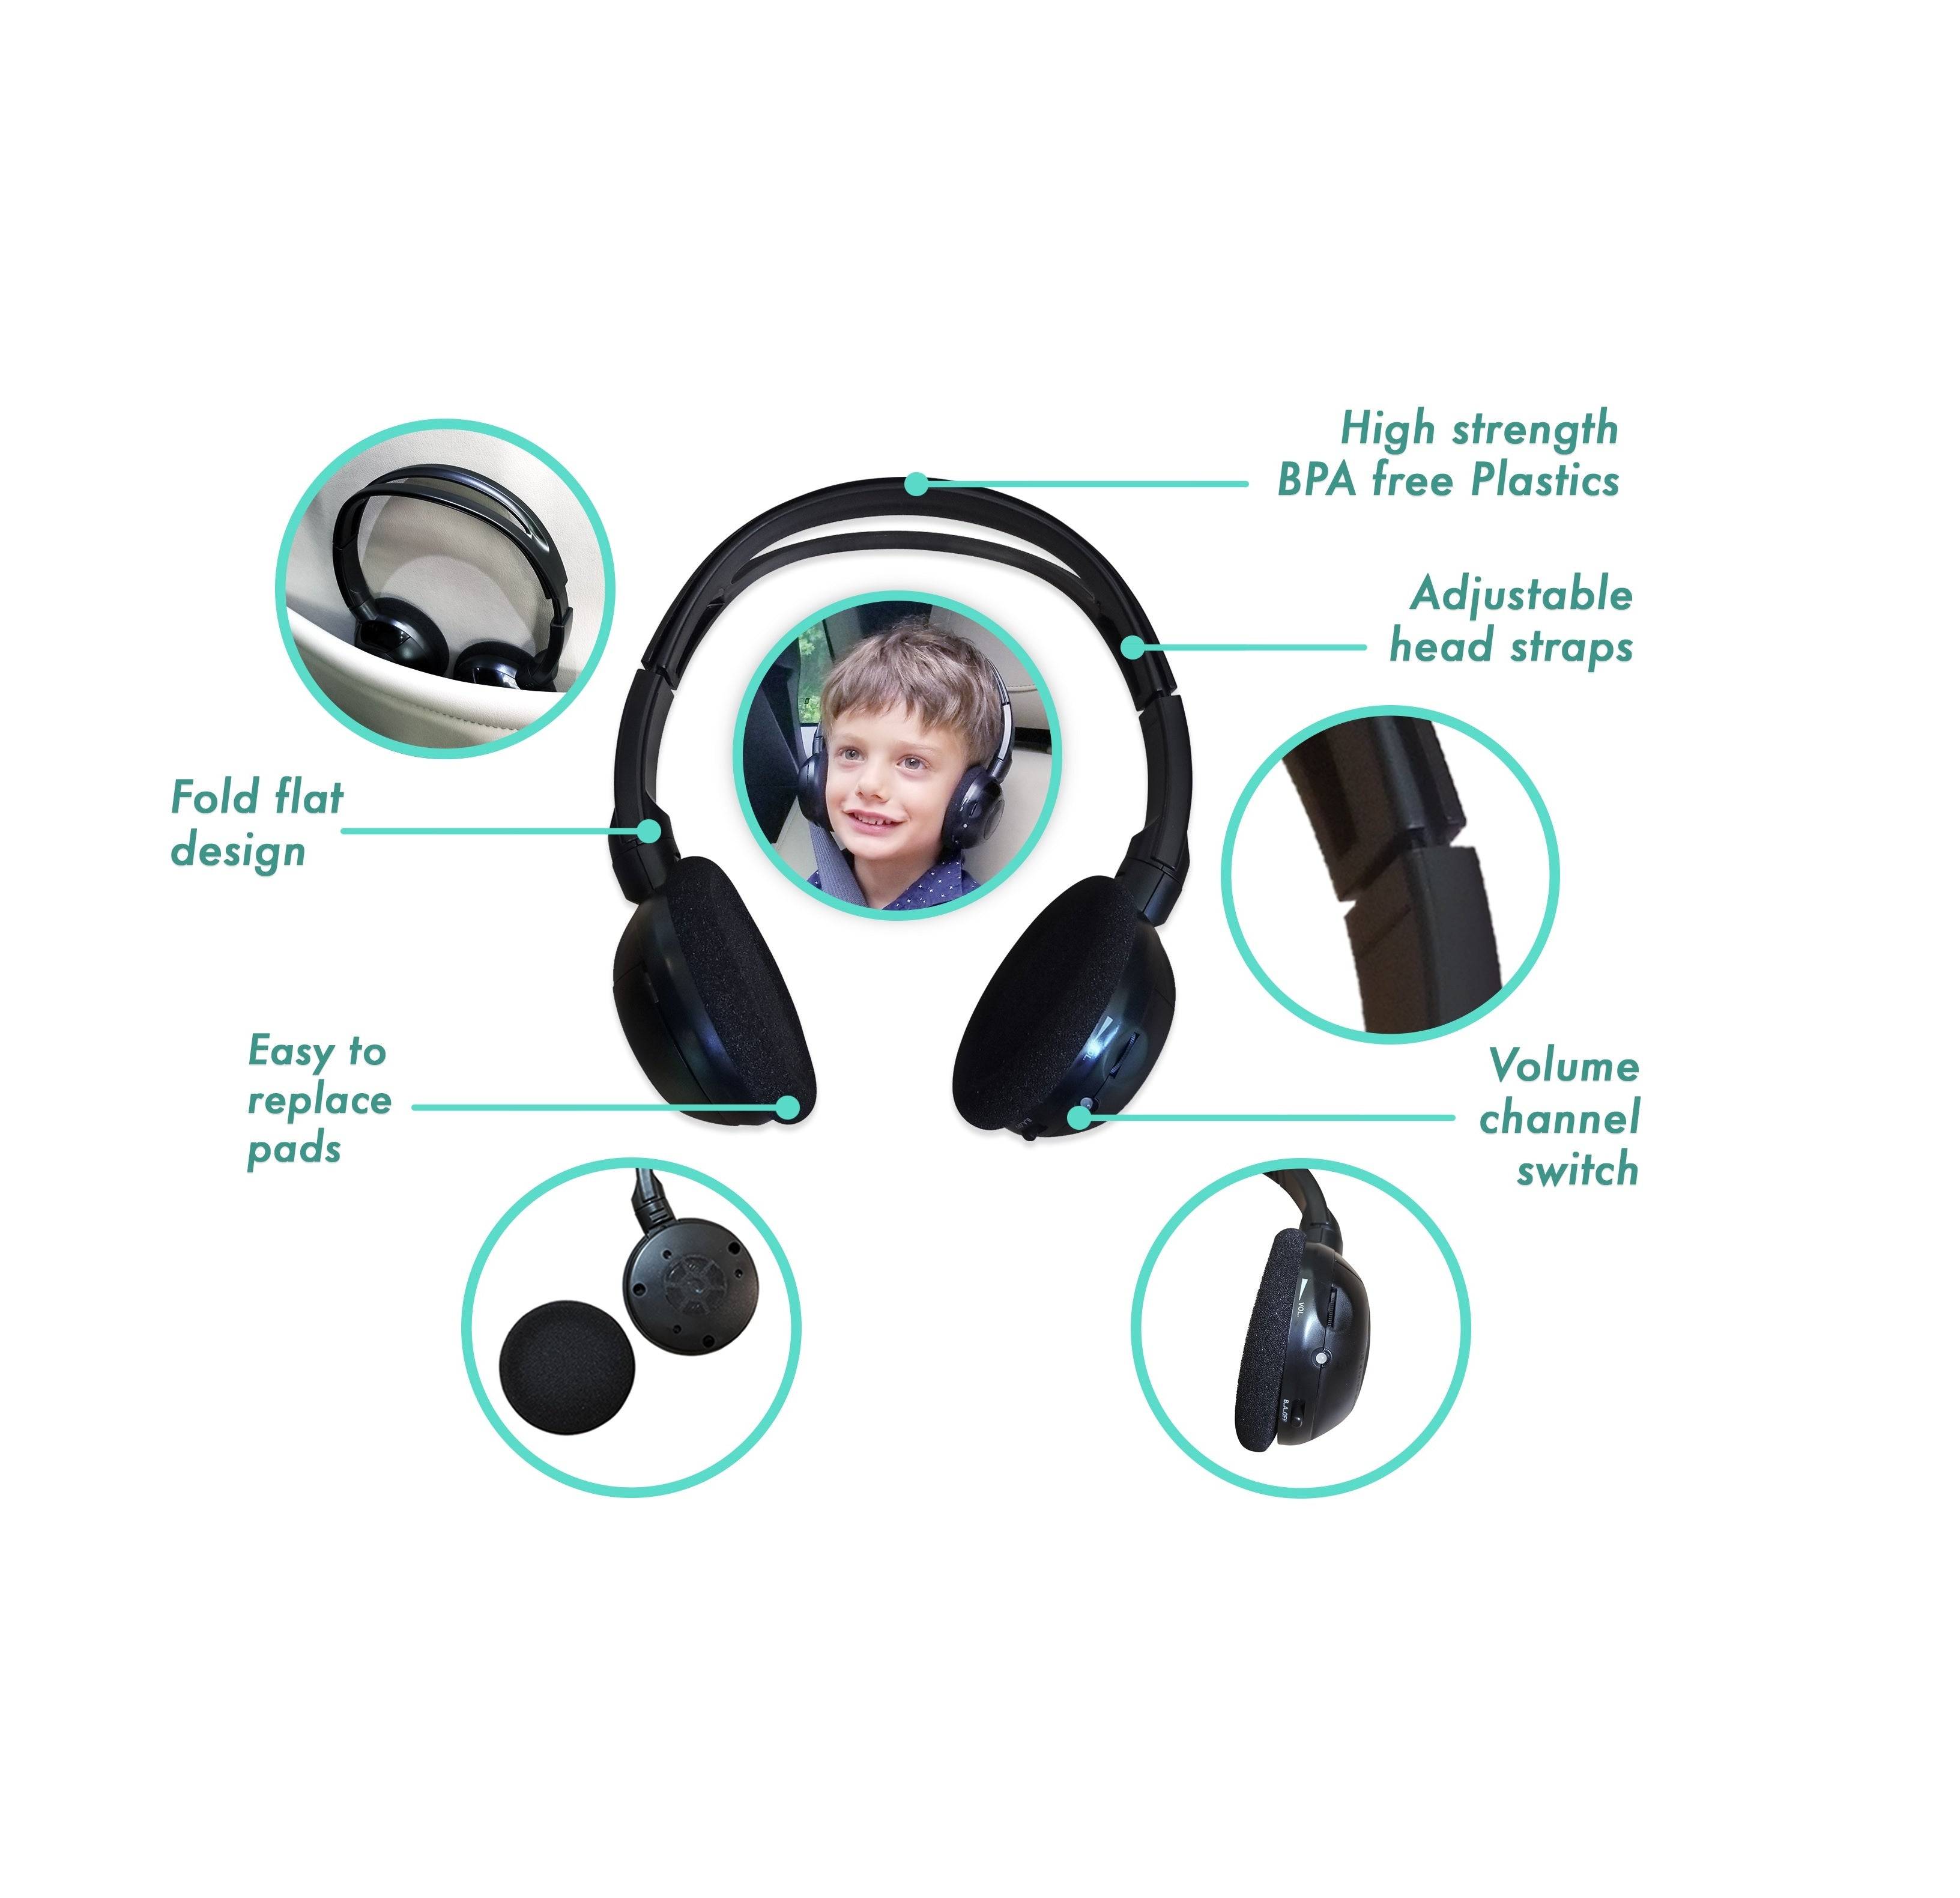 2017 Dodge Grand Caravan Wireless DVD Headphones and Uconnect Remote